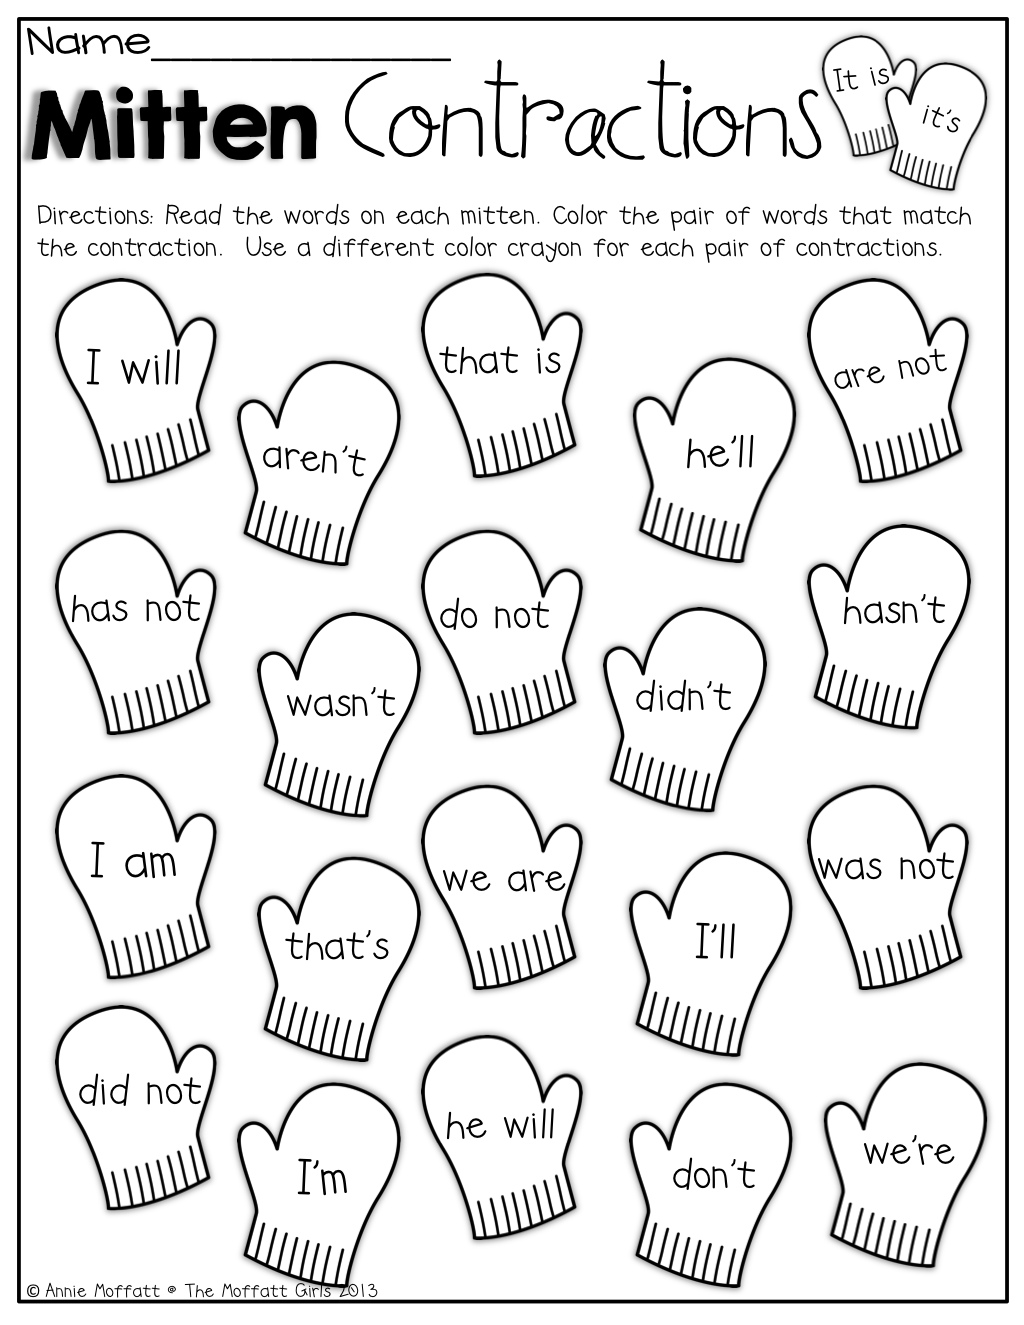 Mitten Contractions! Color The Pair Of Words That Match The